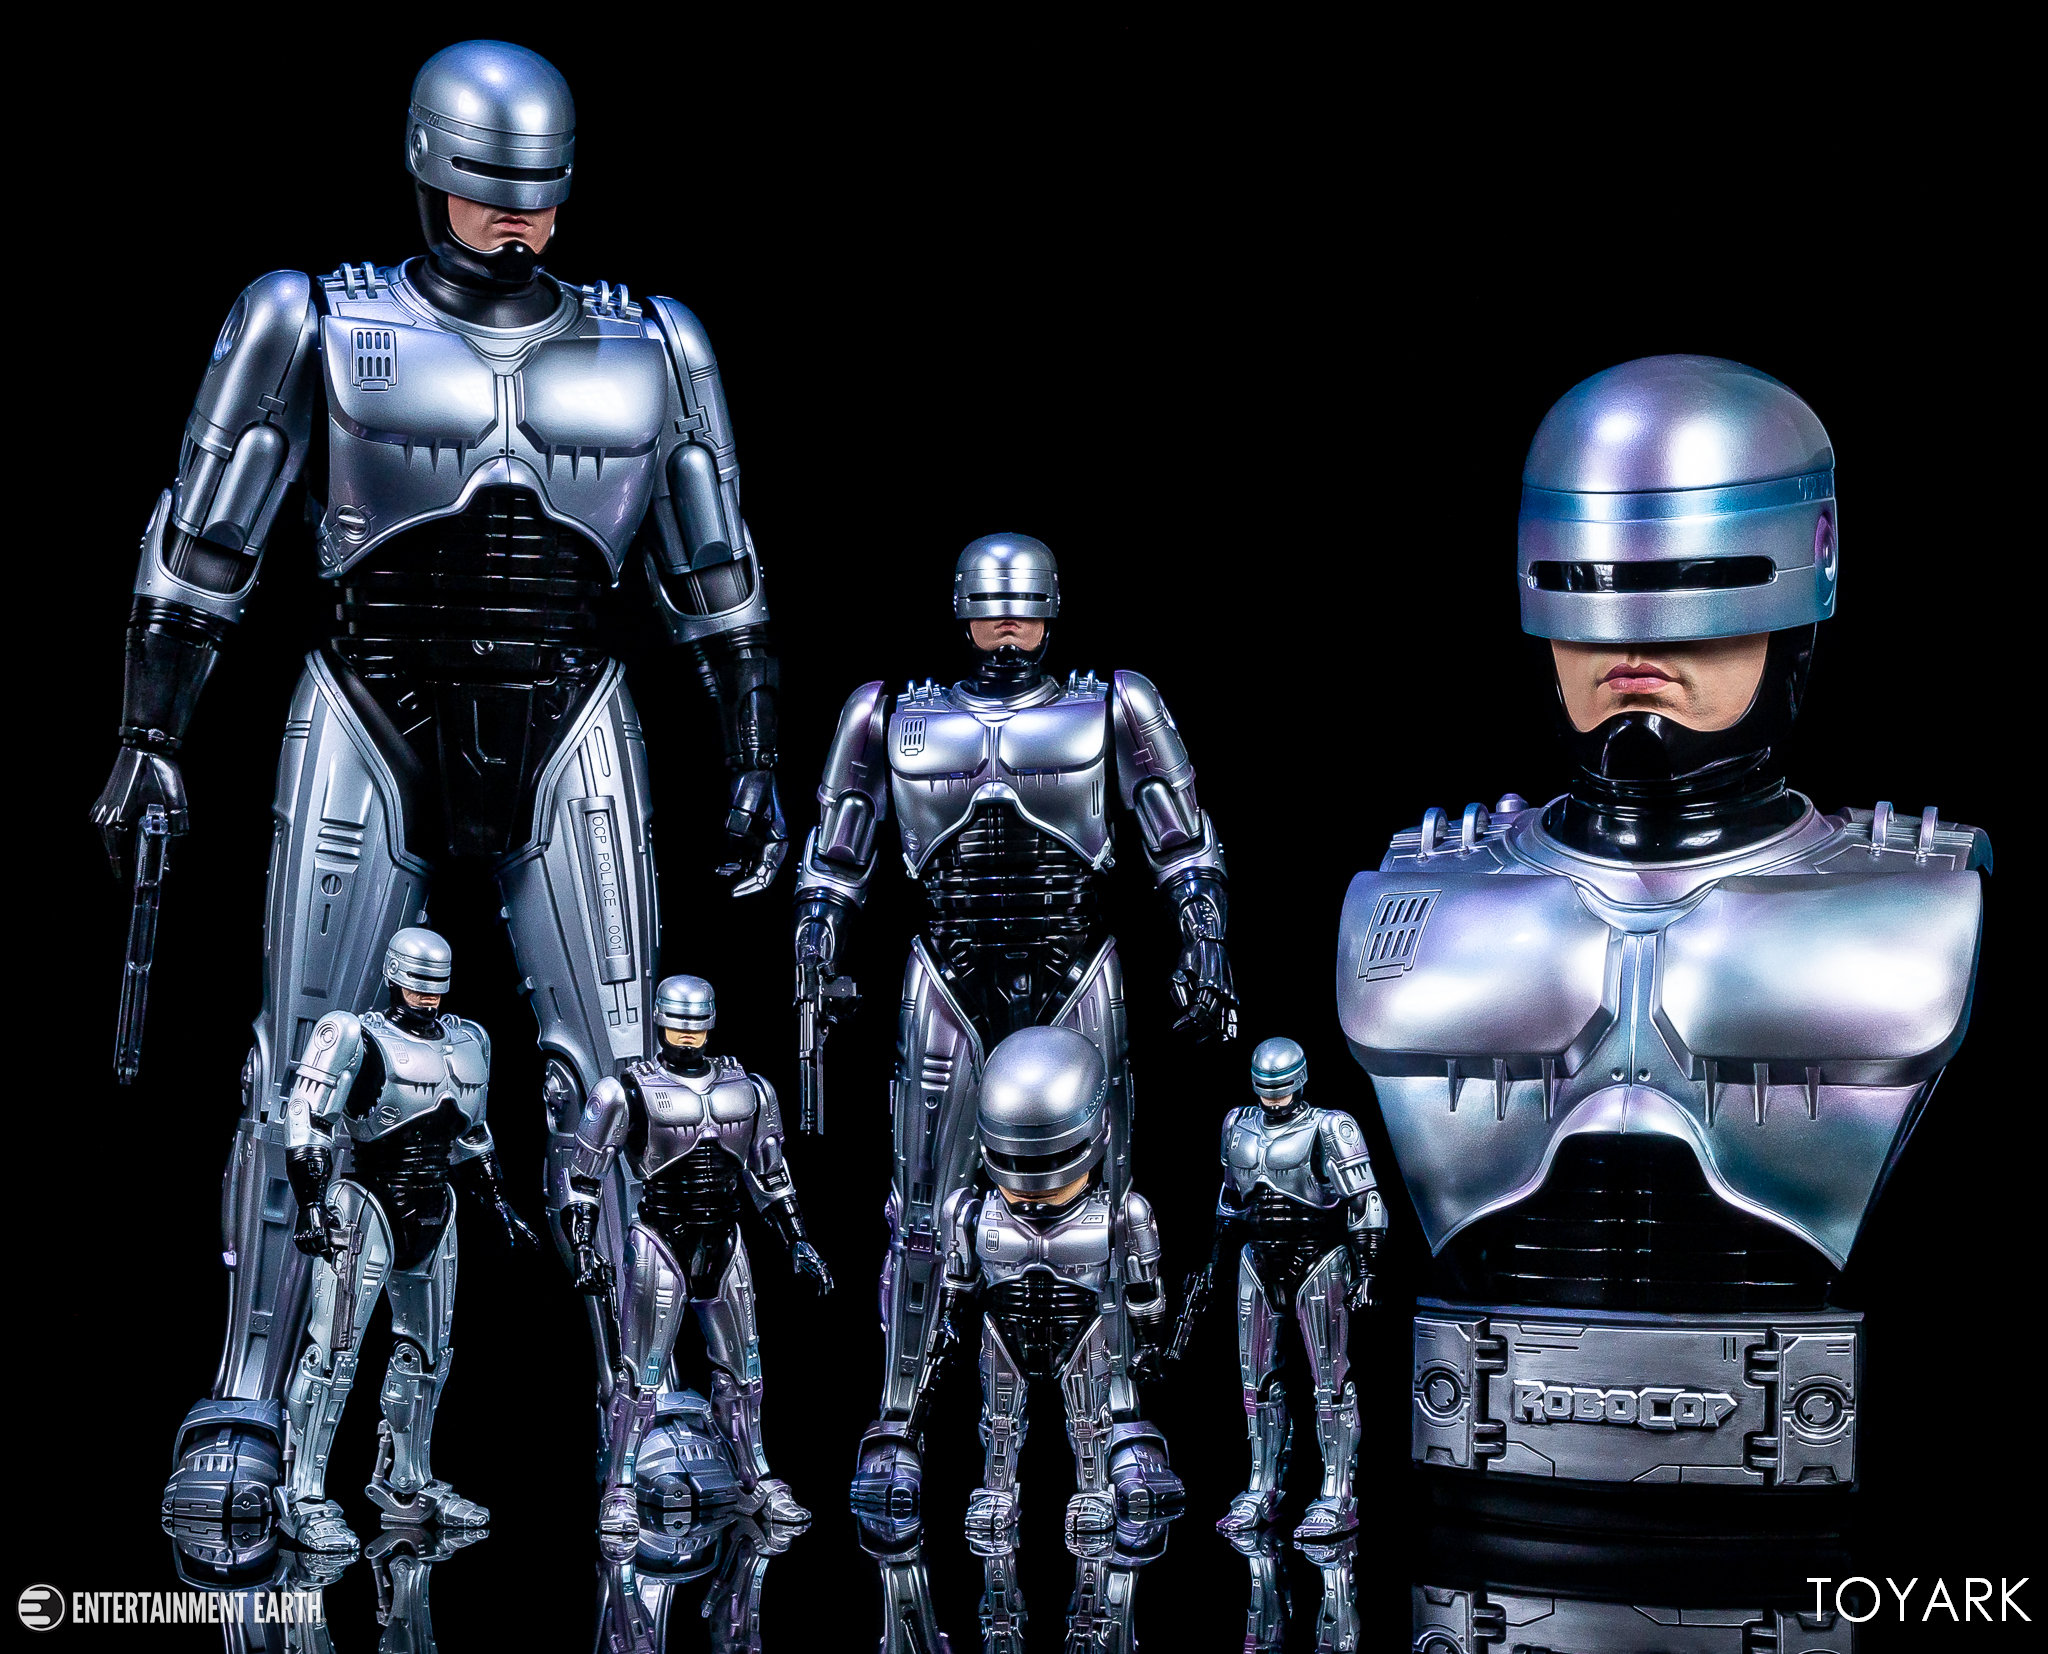 https://news.toyark.com/wp-content/uploads/sites/4/2019/03/MAFEX-Robocop-Gallery-038.jpg